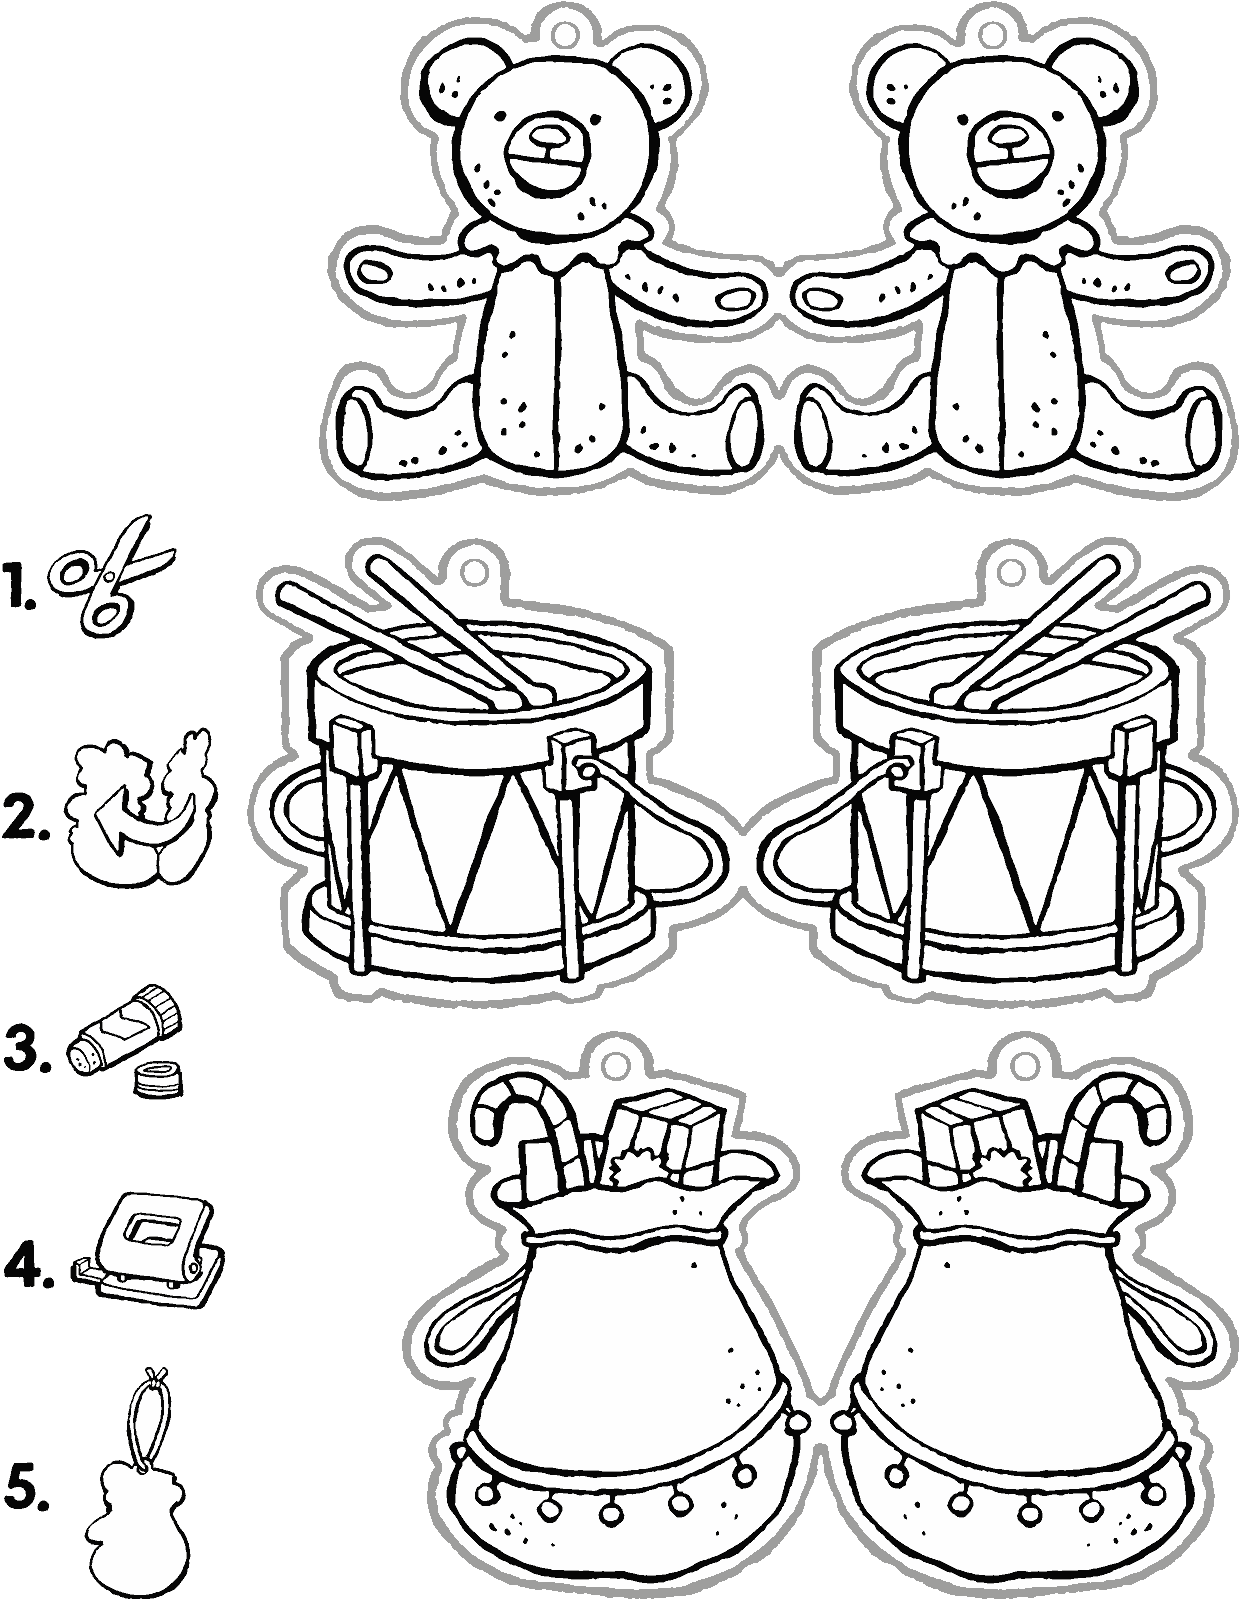 Christmas Colouring Pages Decorations With To Put In The Tree Kiddicolour